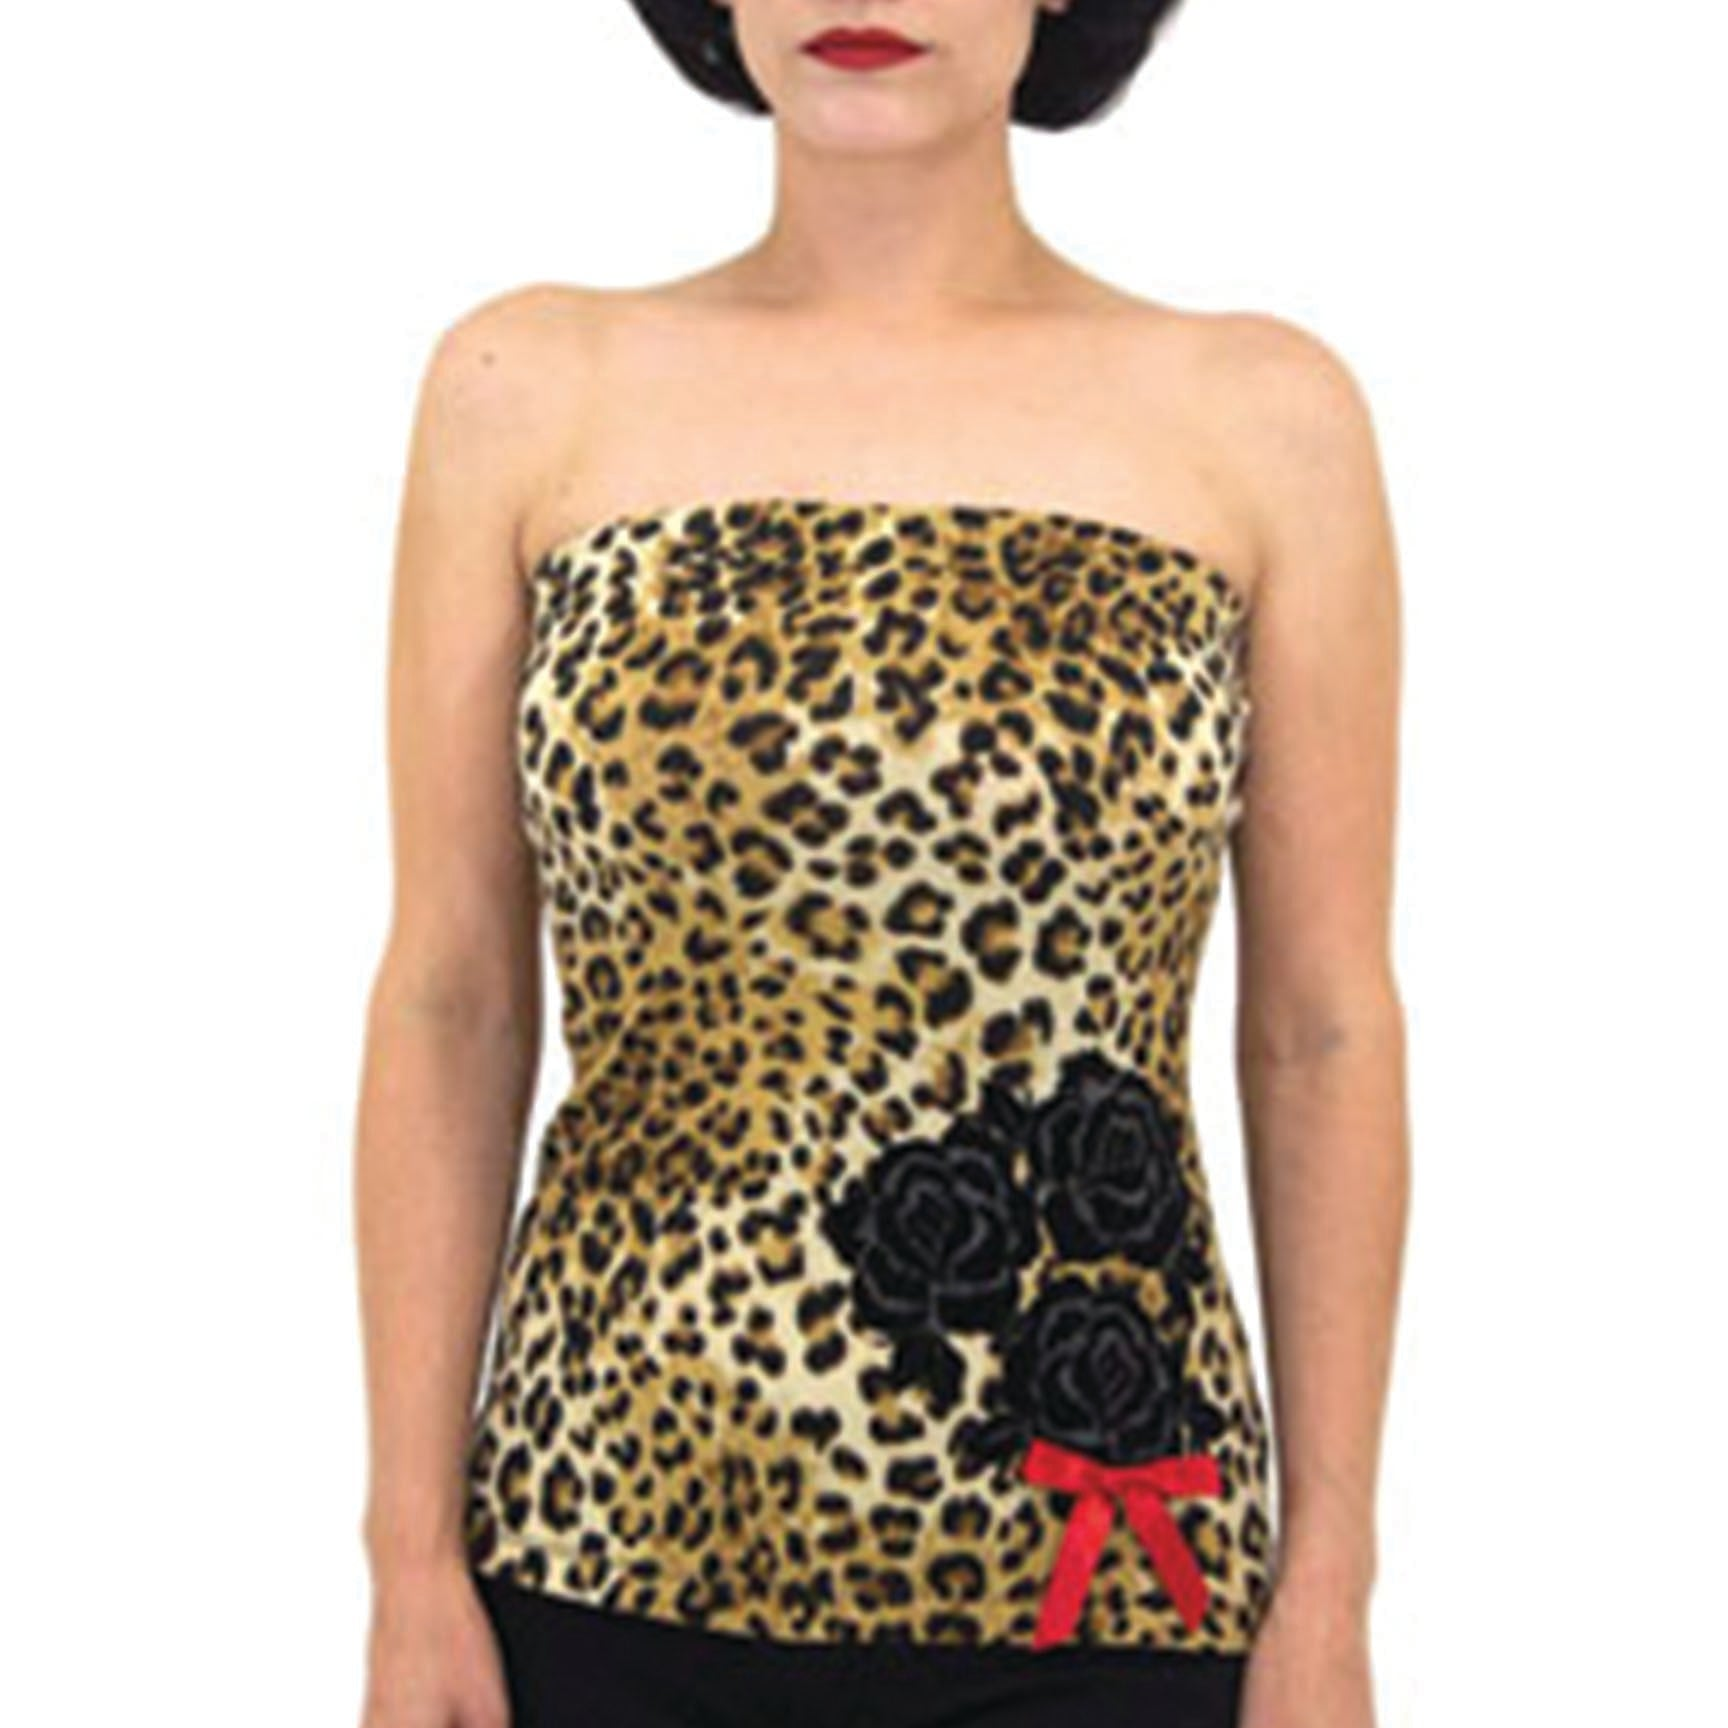 The SANDY Leopard Tube Top - LAST ONE IS A SMALL!